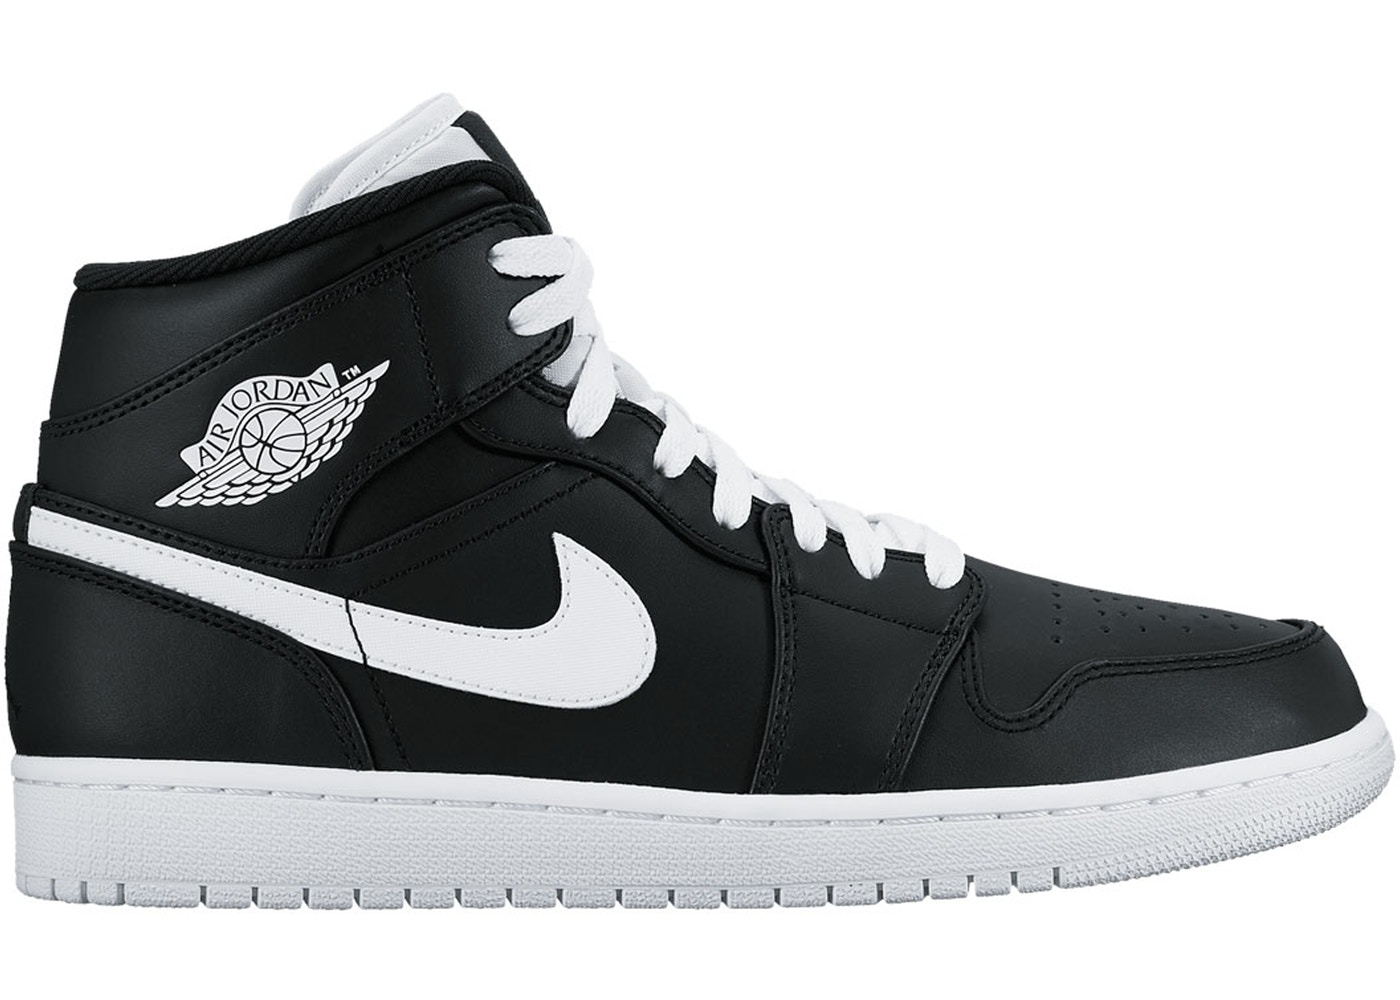 competitive price 1262a b1af6 Jordan 1 Retro Mid Black White